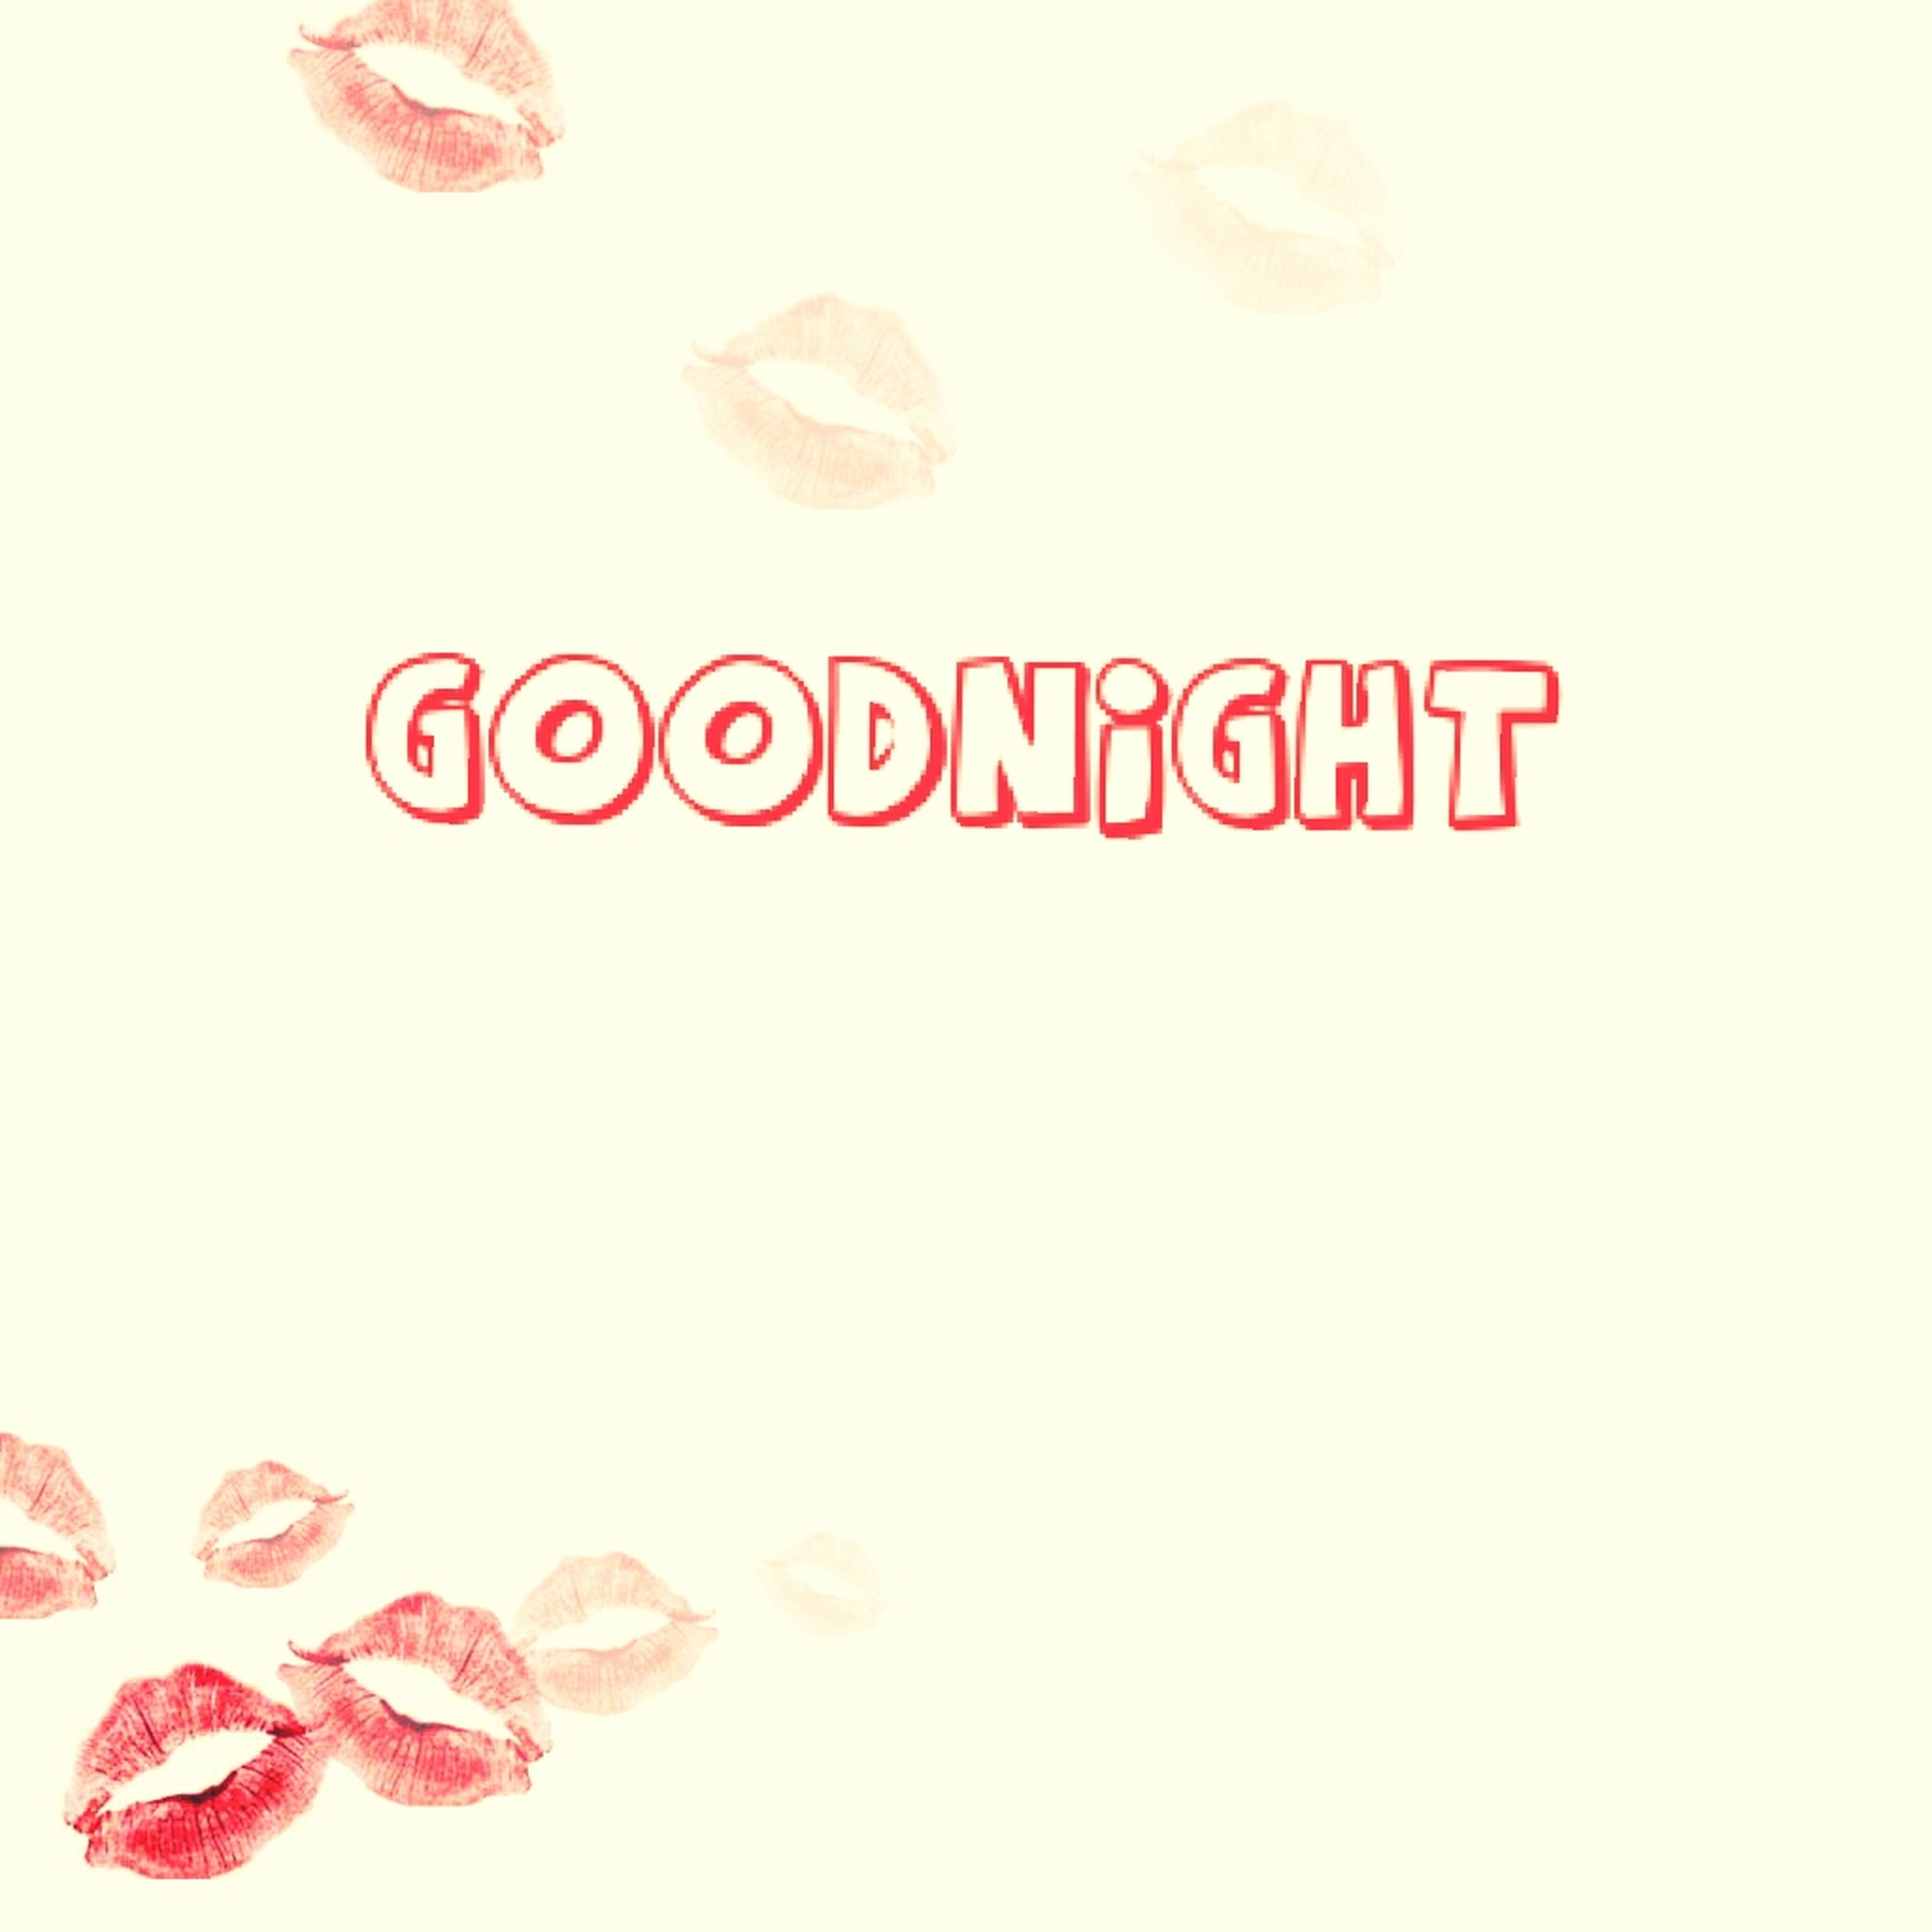 red, text, studio shot, western script, white background, communication, copy space, close-up, indoors, pink color, wall - building feature, no people, love, heart shape, wall, white color, capital letter, still life, paper, flower